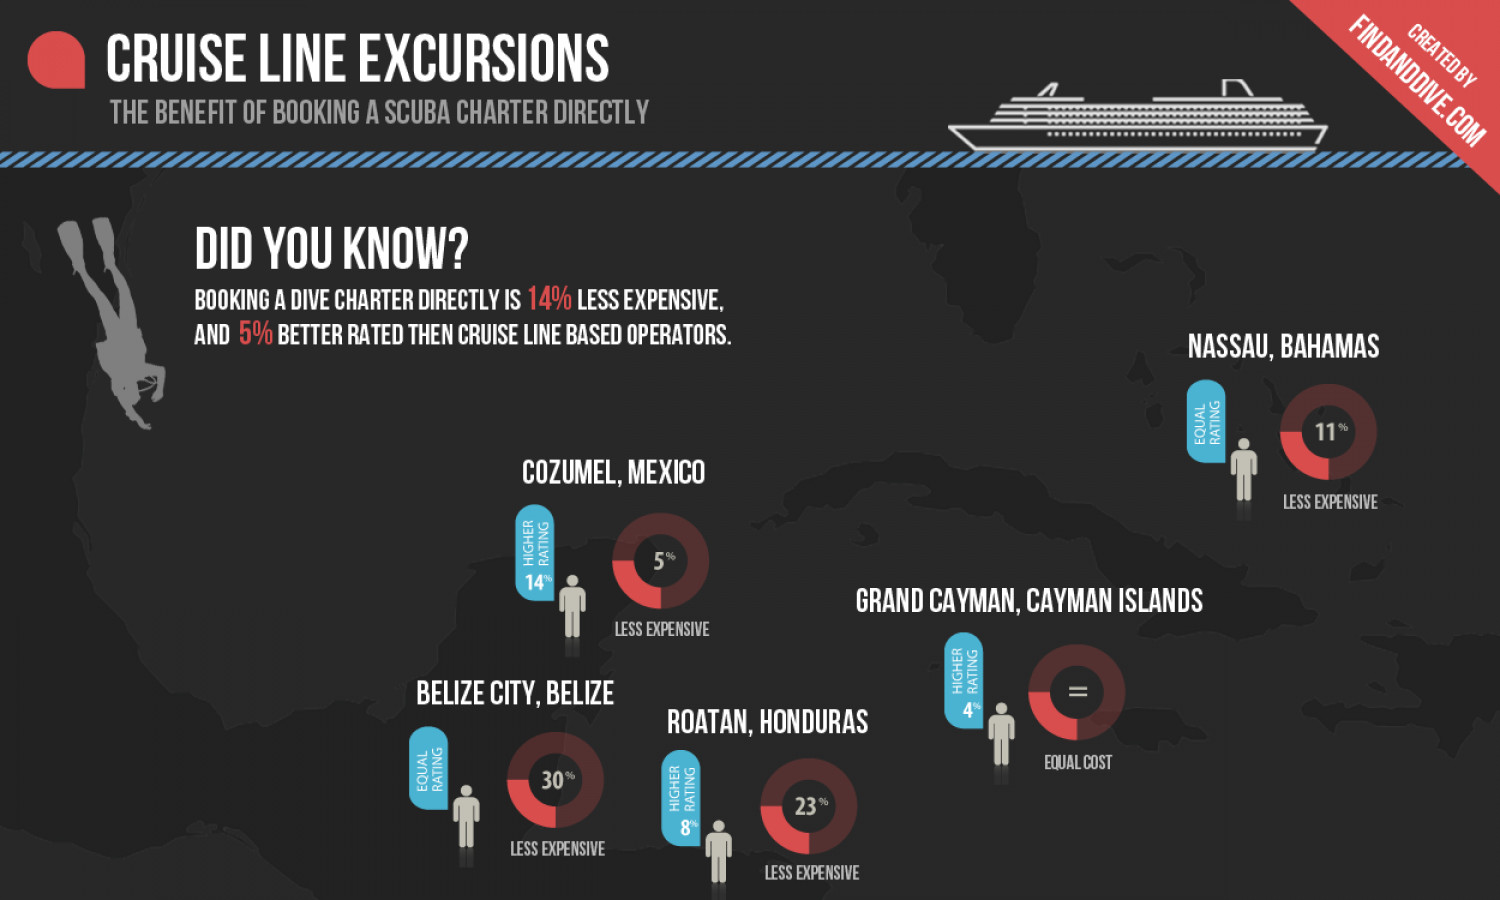 The Benefit of Booking A Scuba Charter Directly Infographic